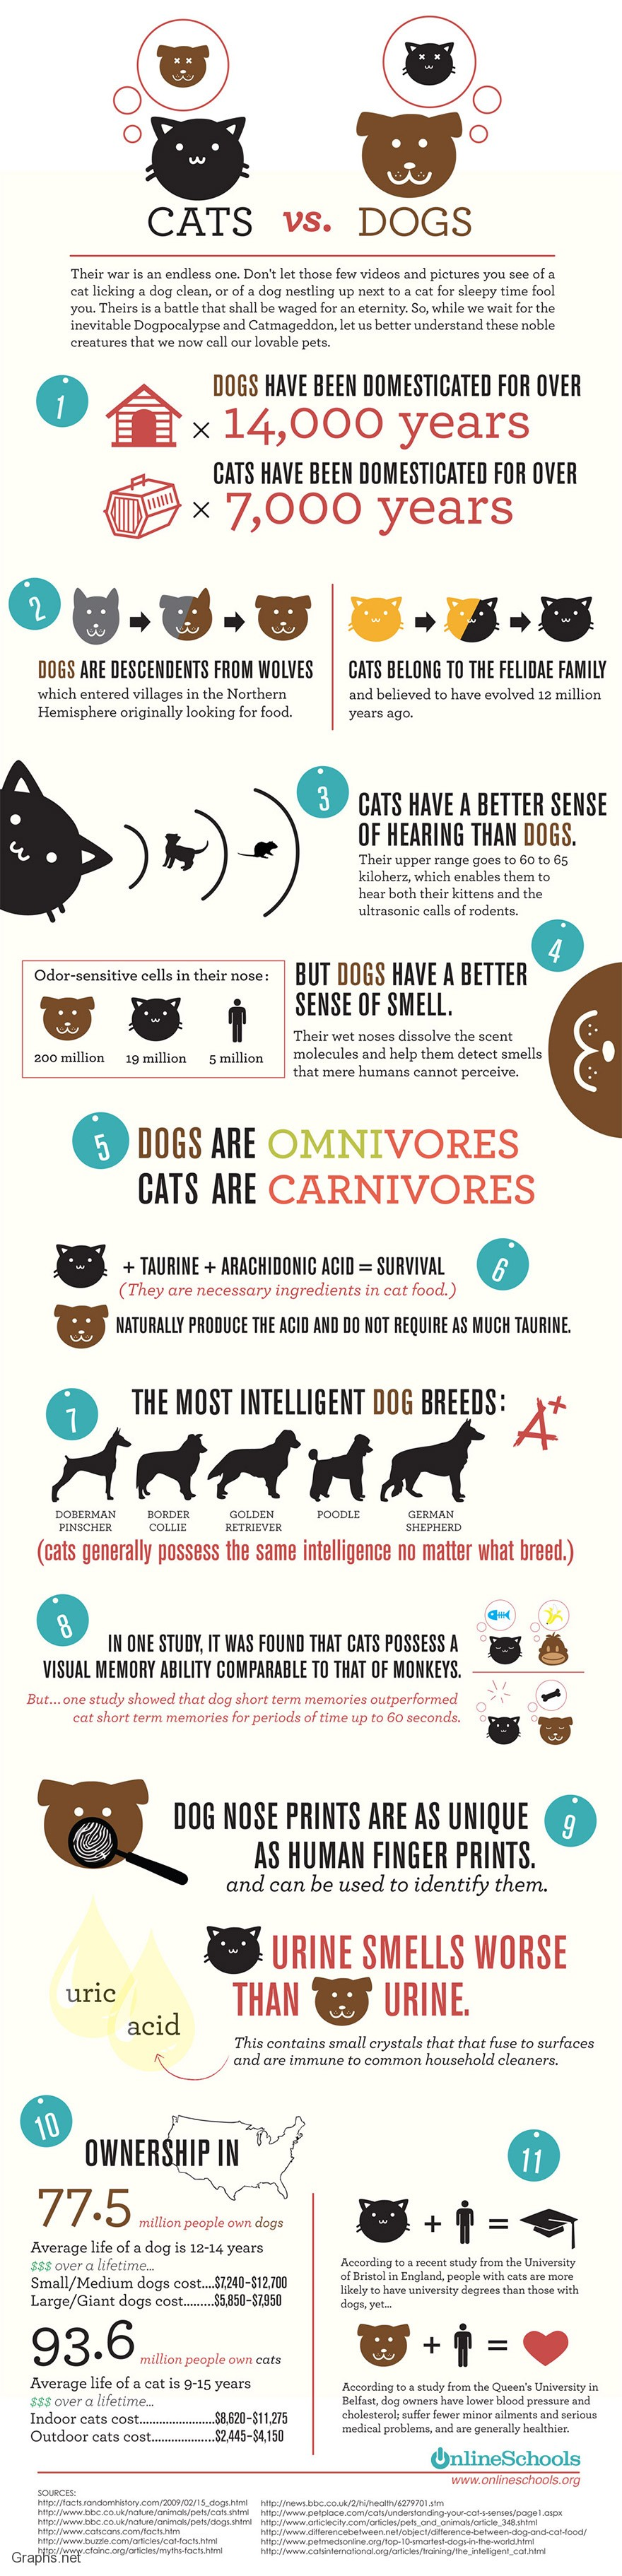 Some facts about Cats and Dogs